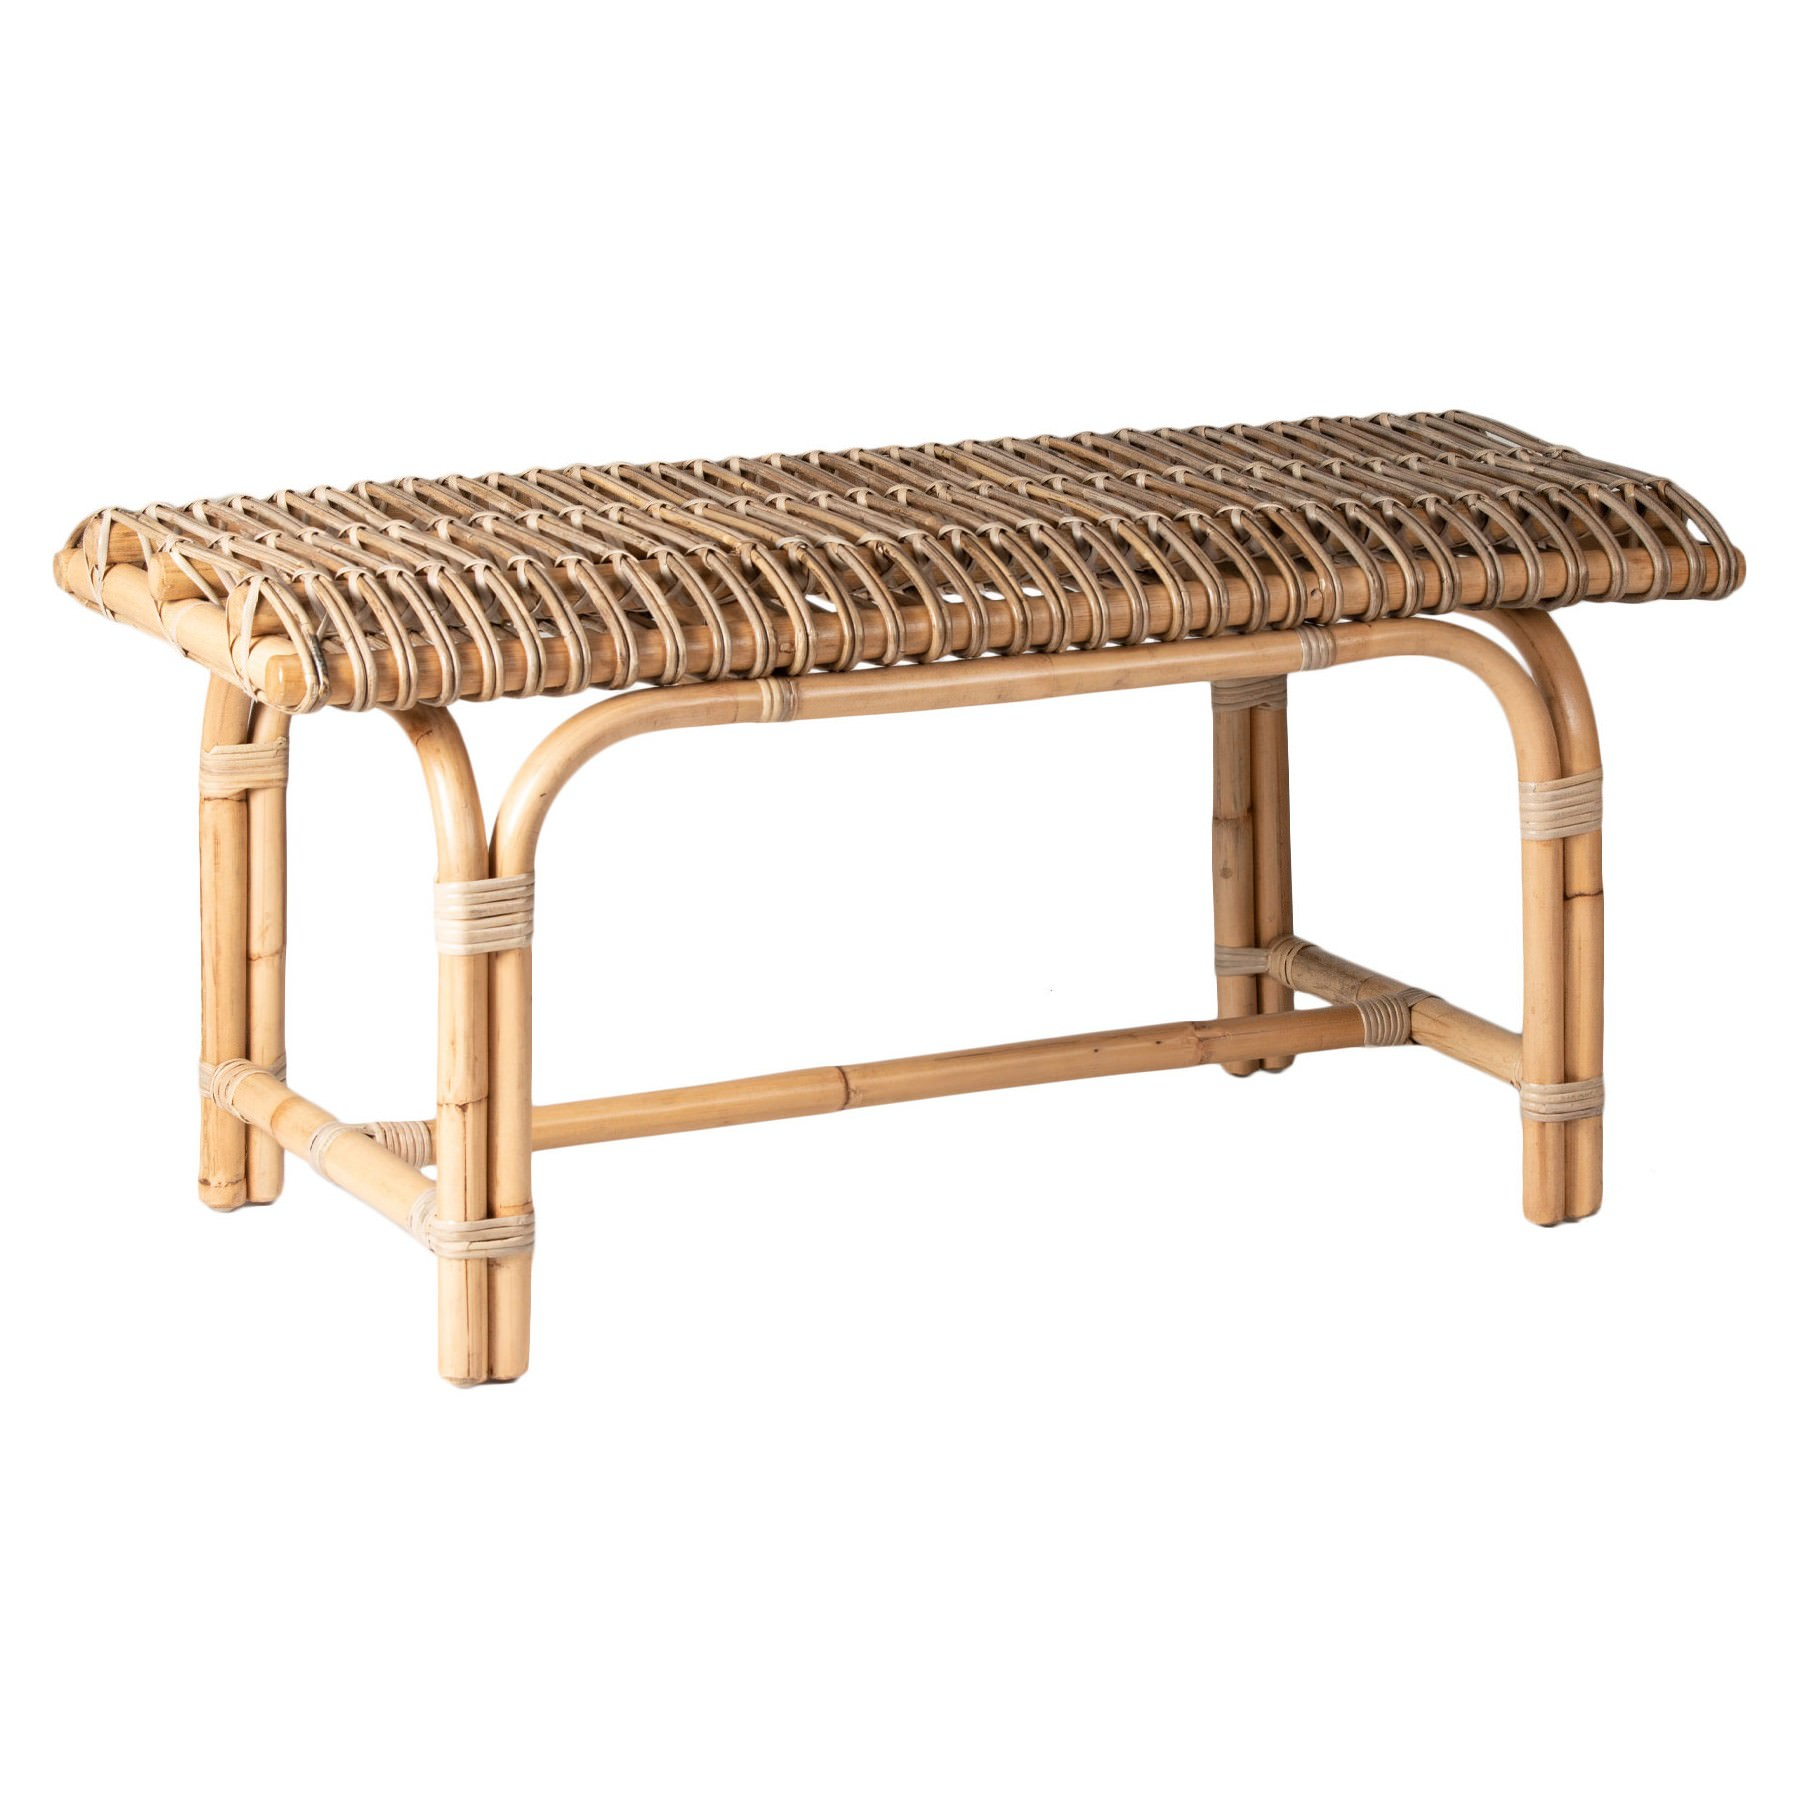 Homestead Rattan Bench, 100cm, Natural